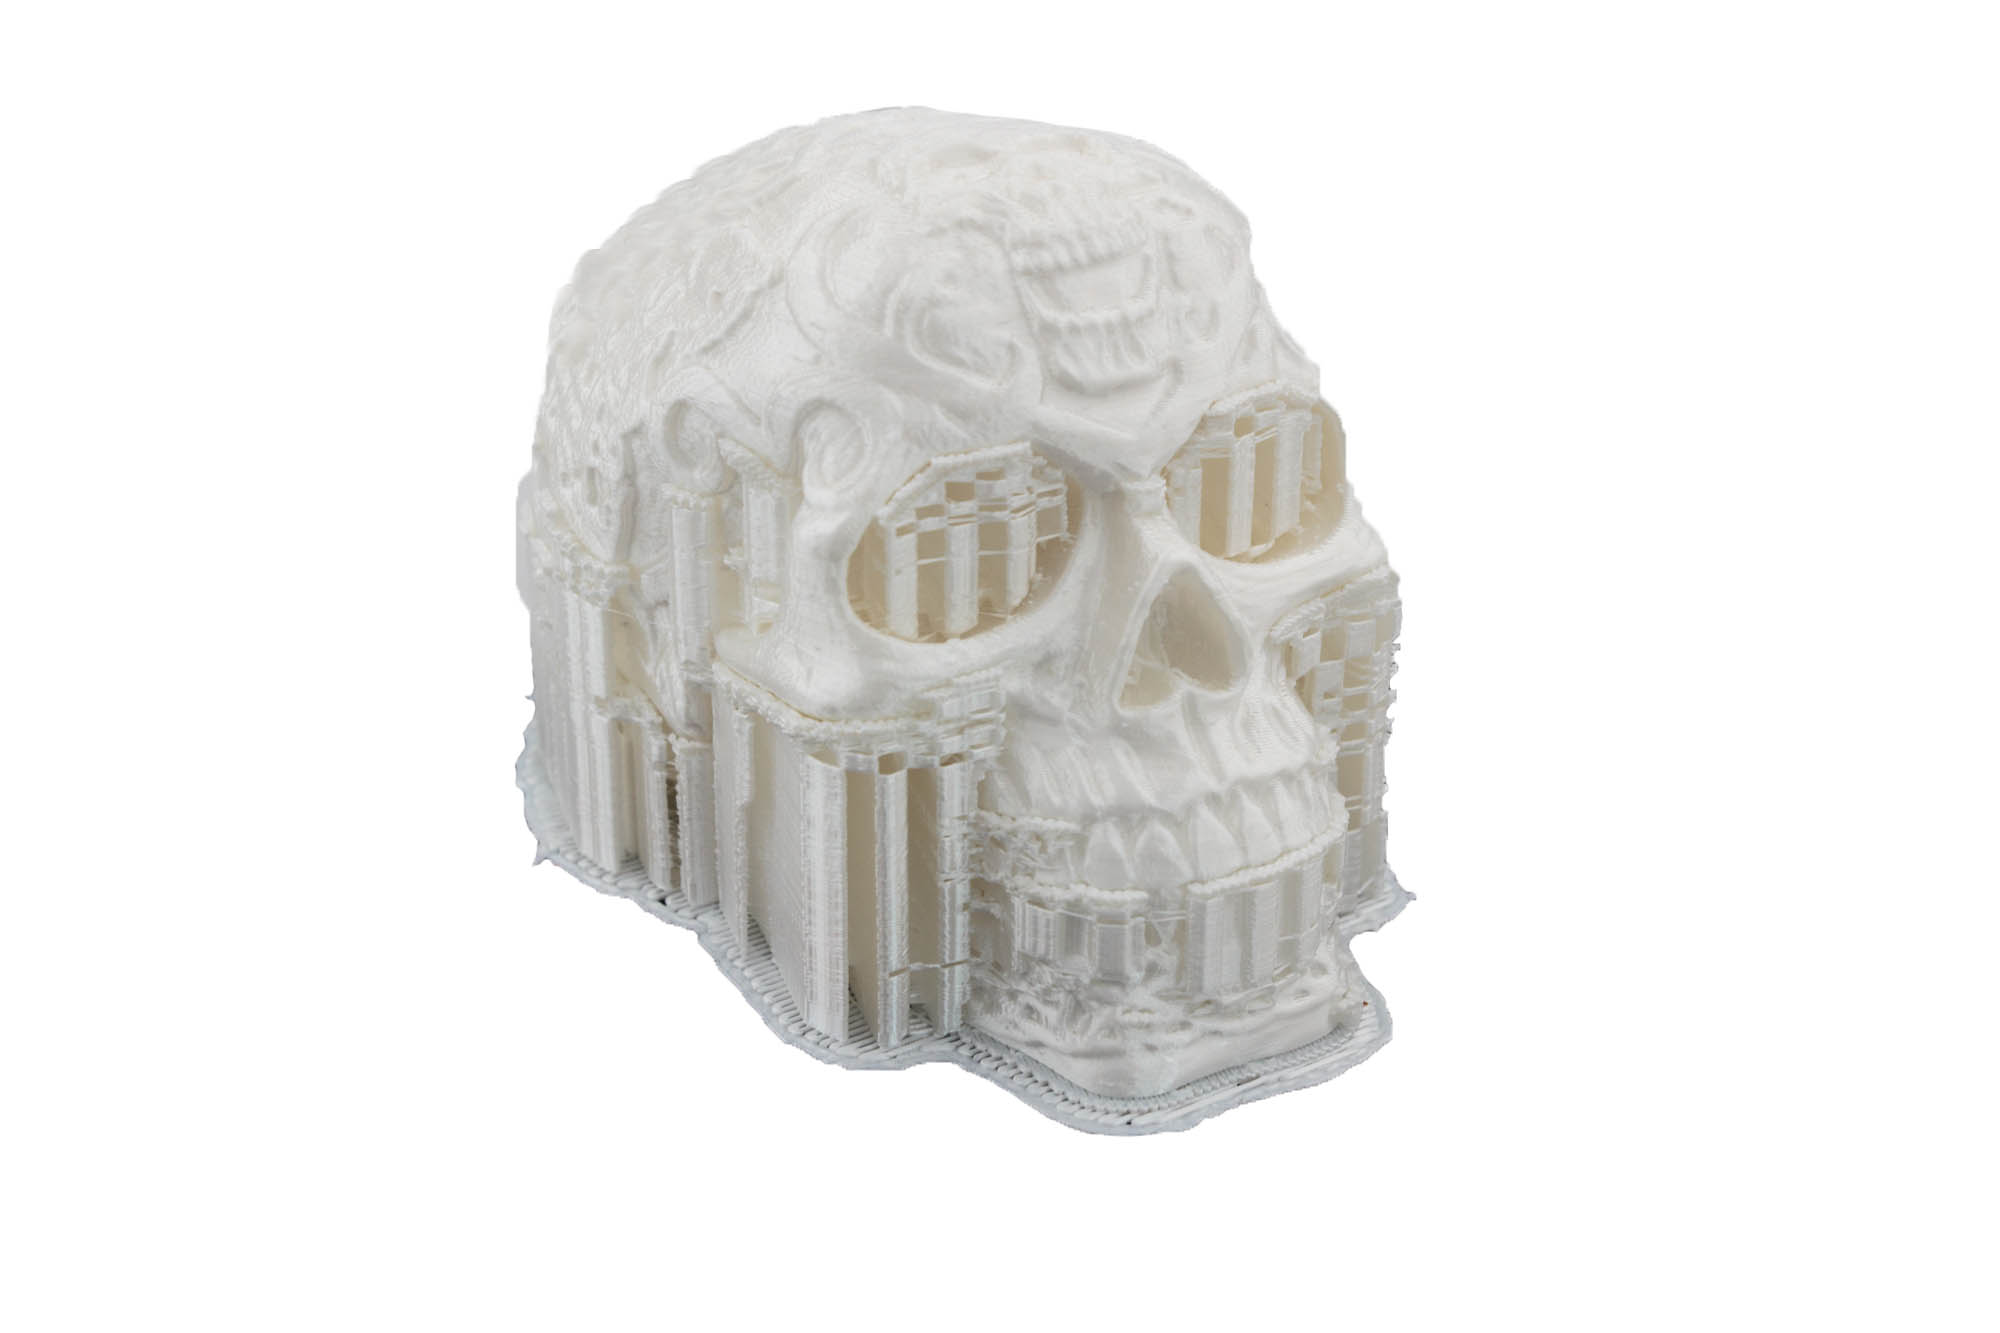 Celtic Skull with support